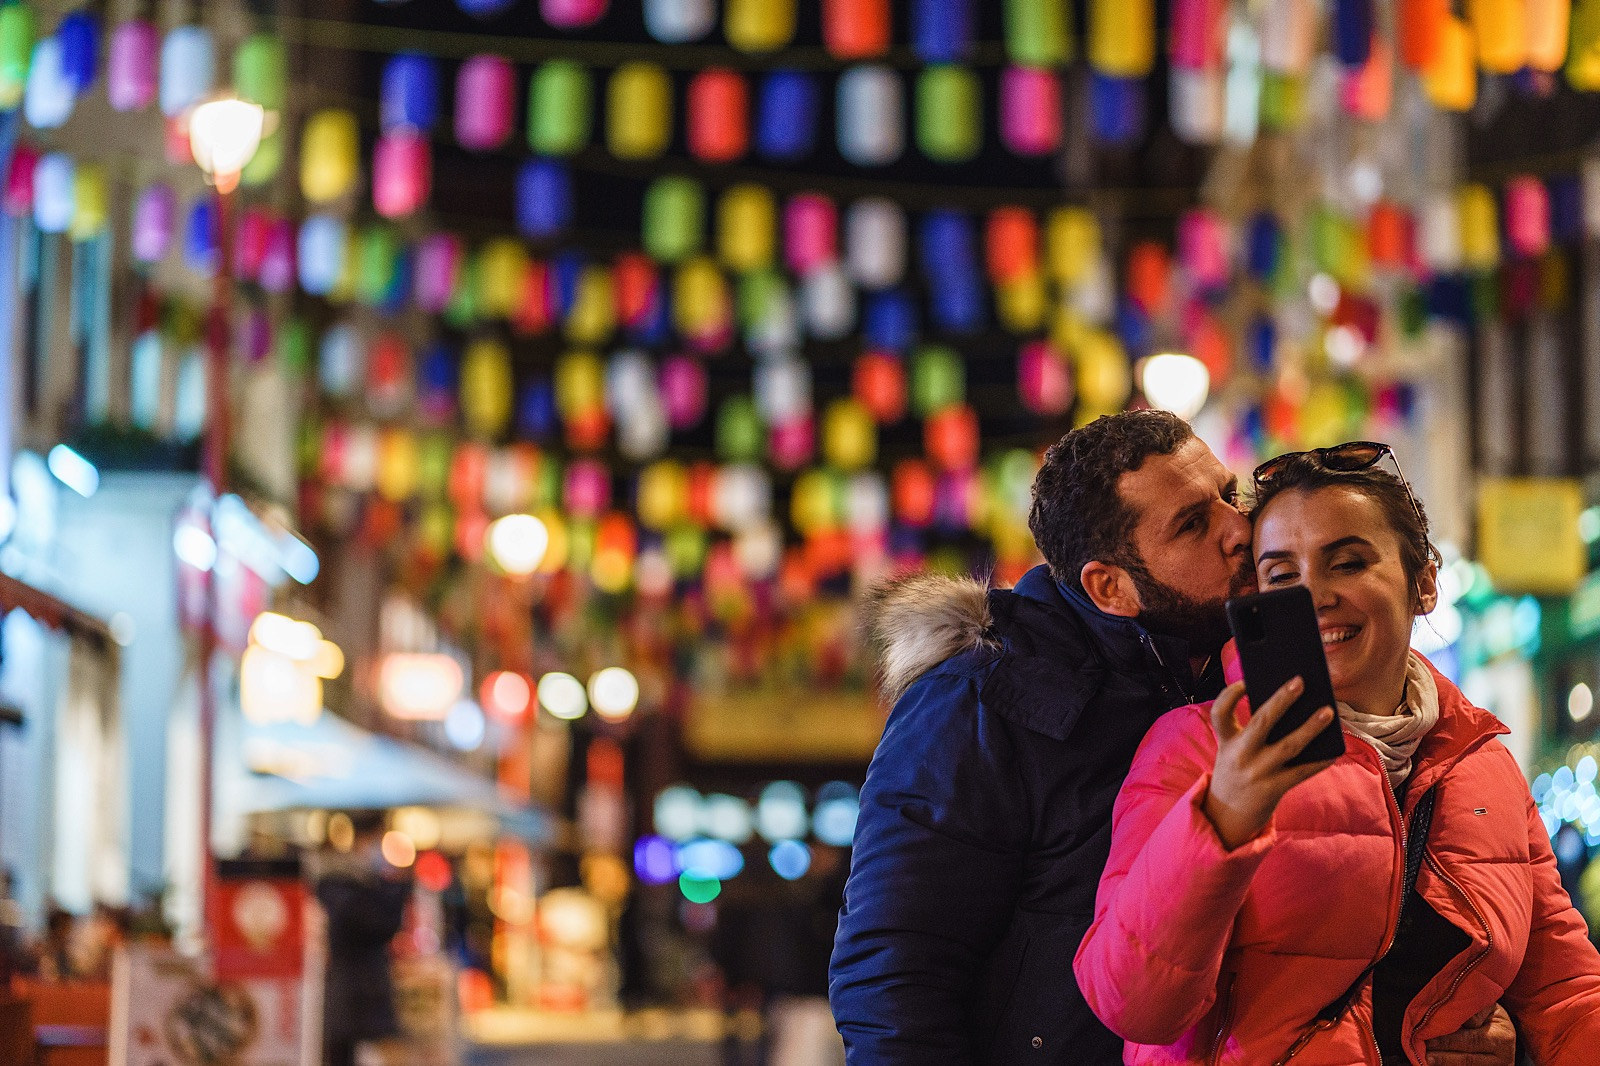 Man kissing woman's head as she looks on phone with colourful lanterns